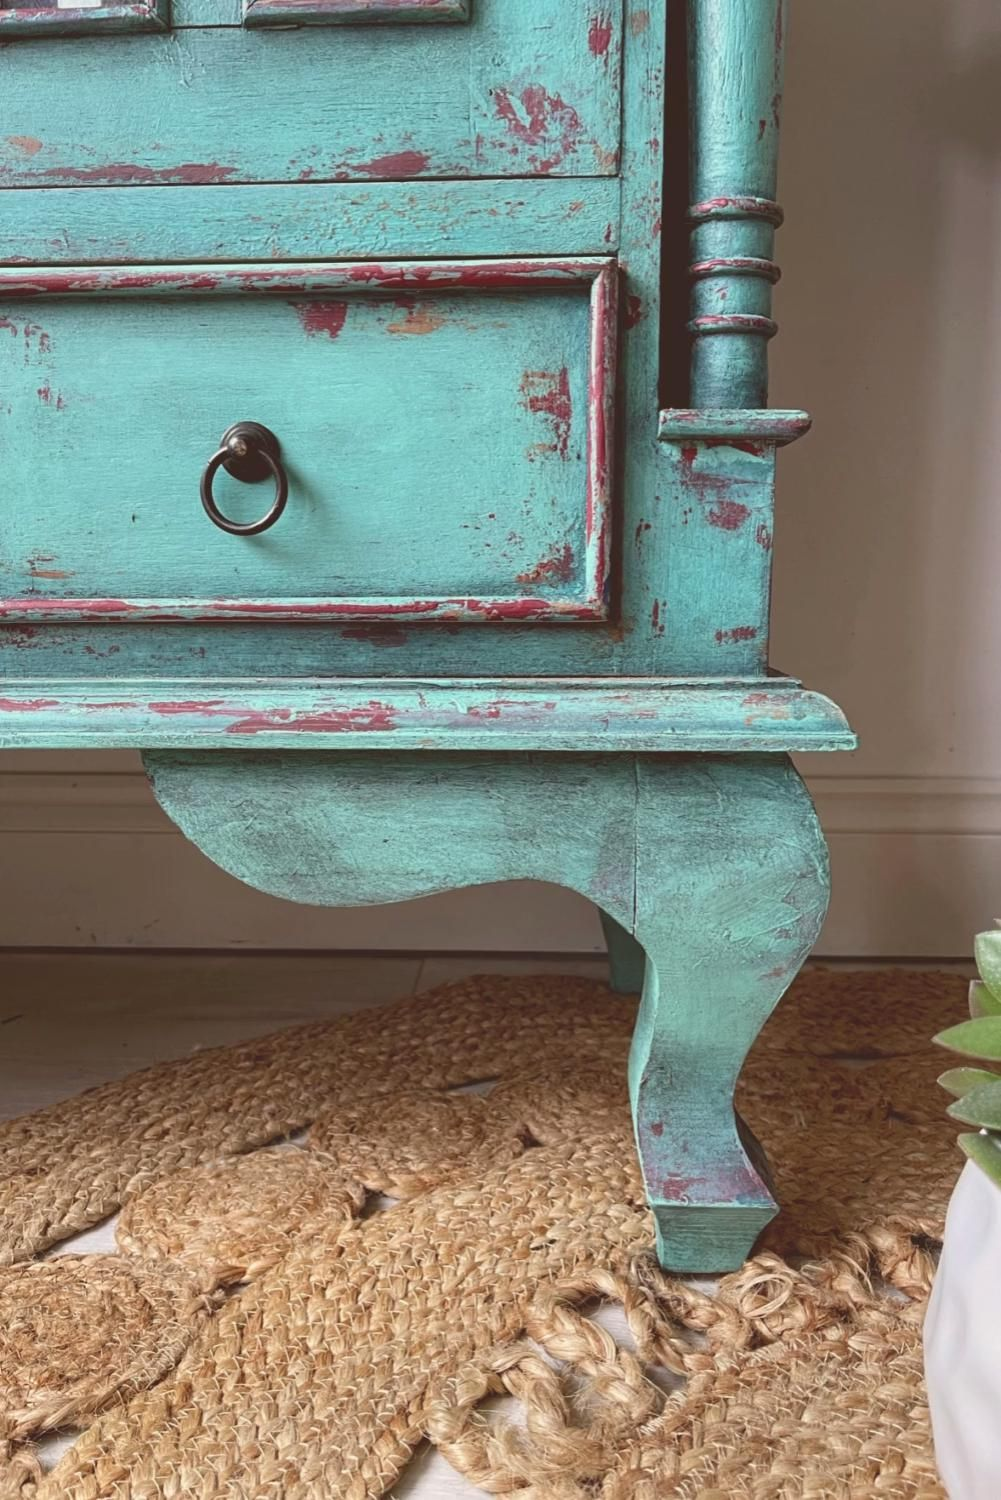 How to create a chippy turquoise bohemian cabinet makeover with Dixie Belle Paint